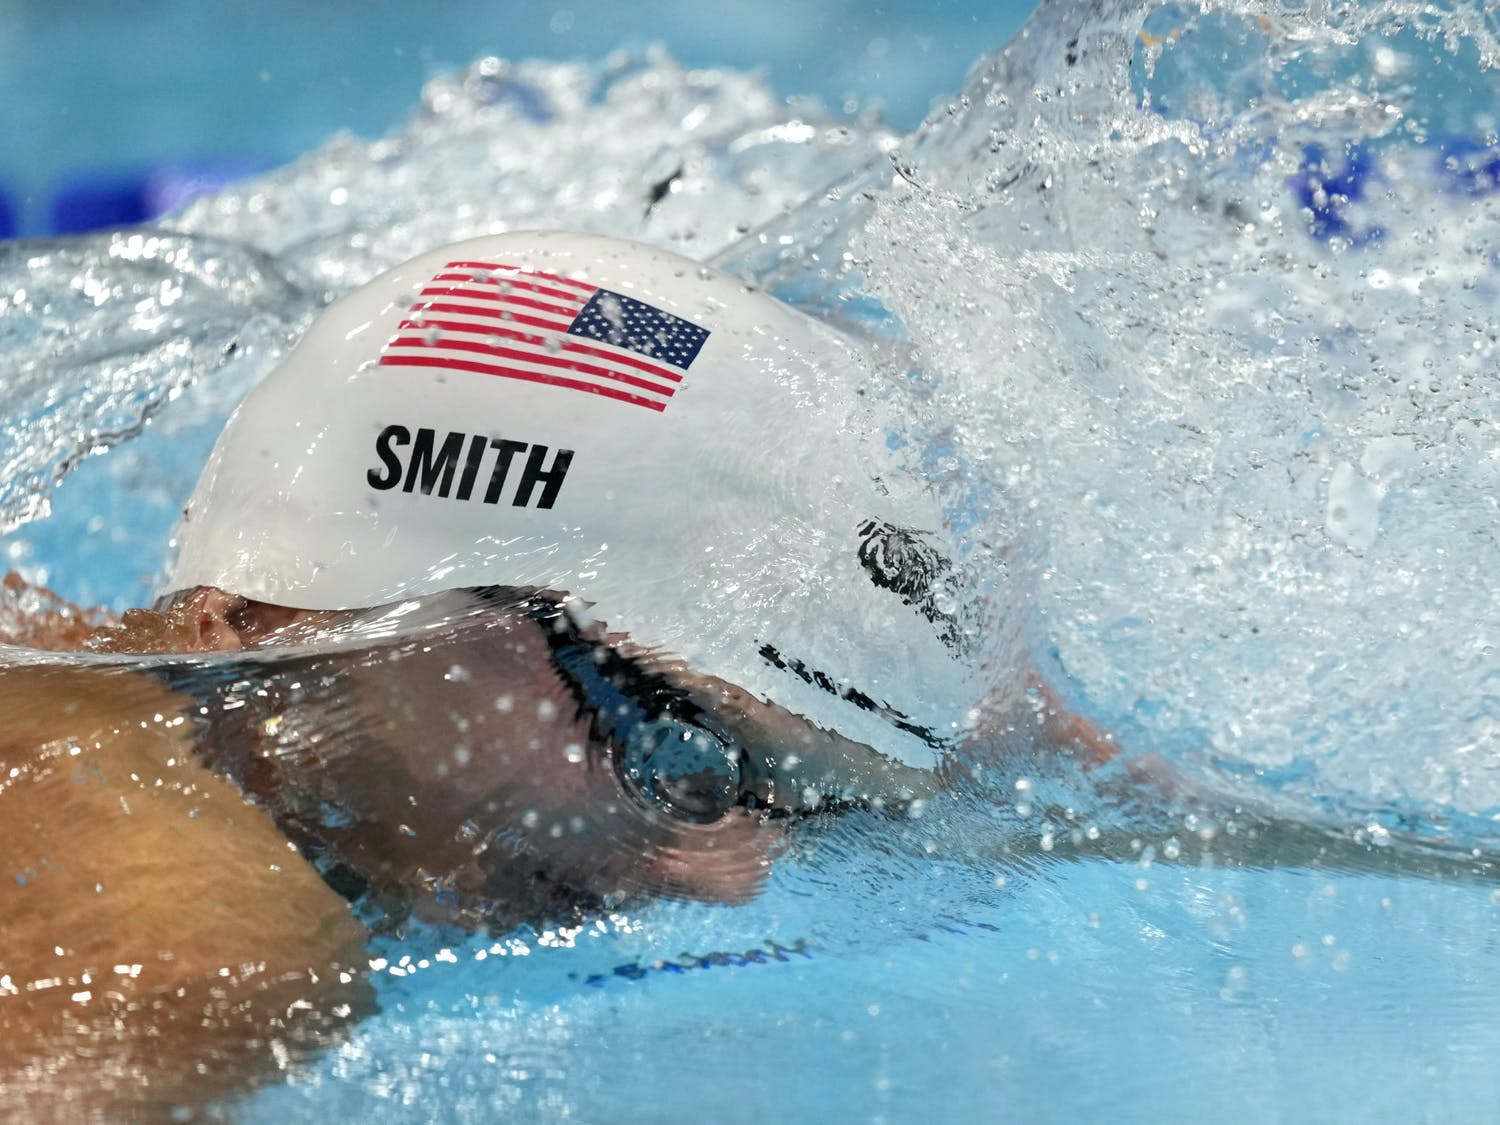 Kieran Smith, of the United States, swims in the fifth heat of the men's 400-meter freestyle at the 2020 Summer Olympics, Saturday, July 24, 2021, in Tokyo, Japan. (AP Photo/Martin Meissner)